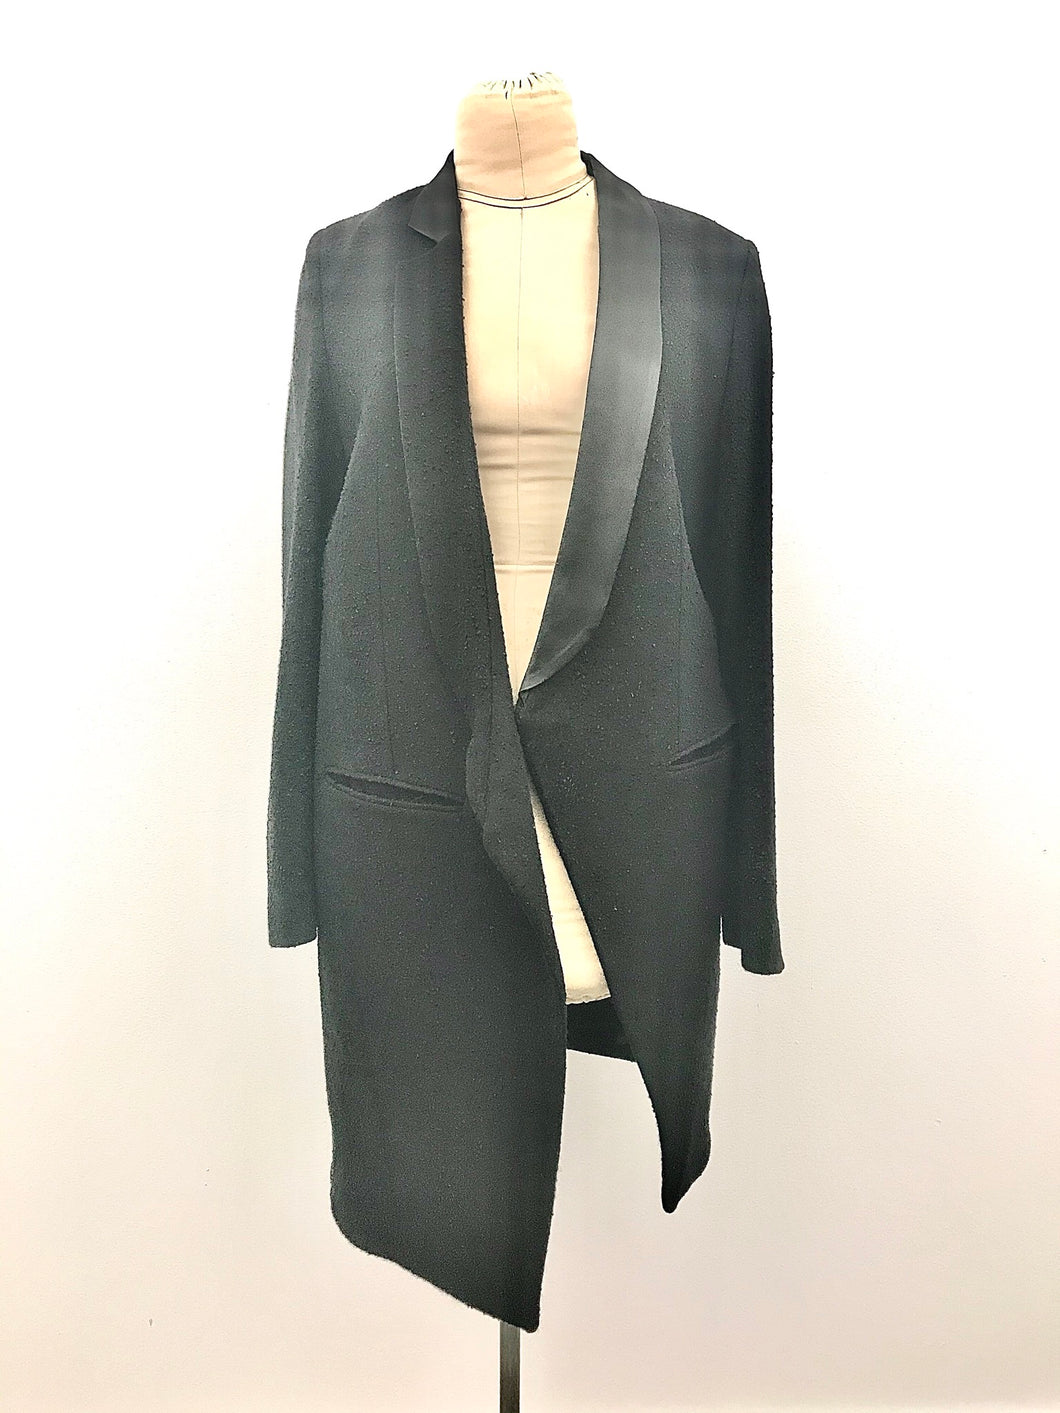 Black textural Asymmetrical Collared Blazer by Ann Demeulemester